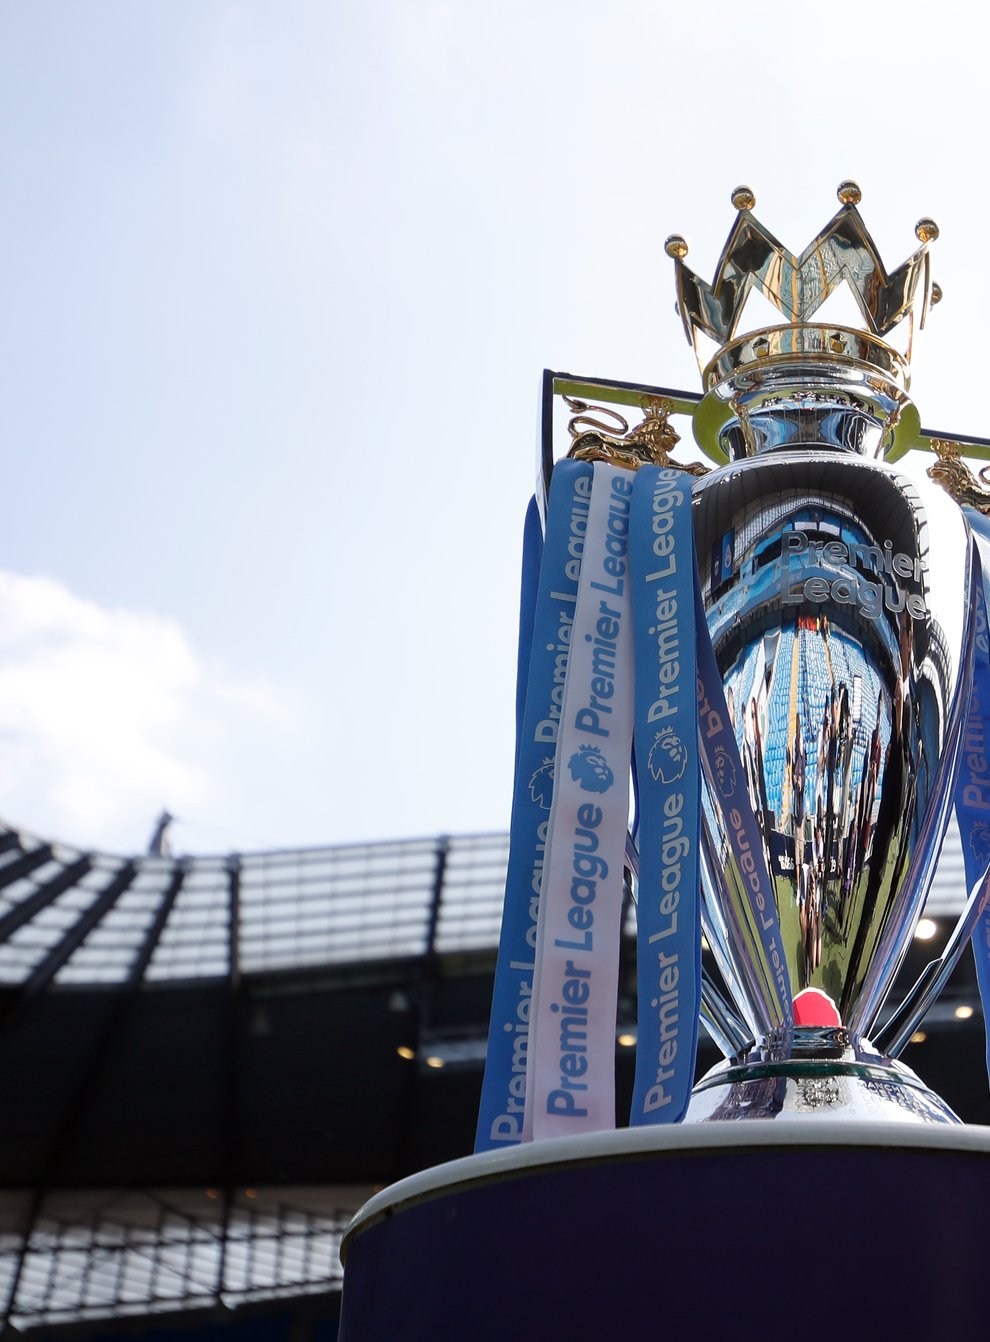 The Premier League resumes next week after a three-month absence